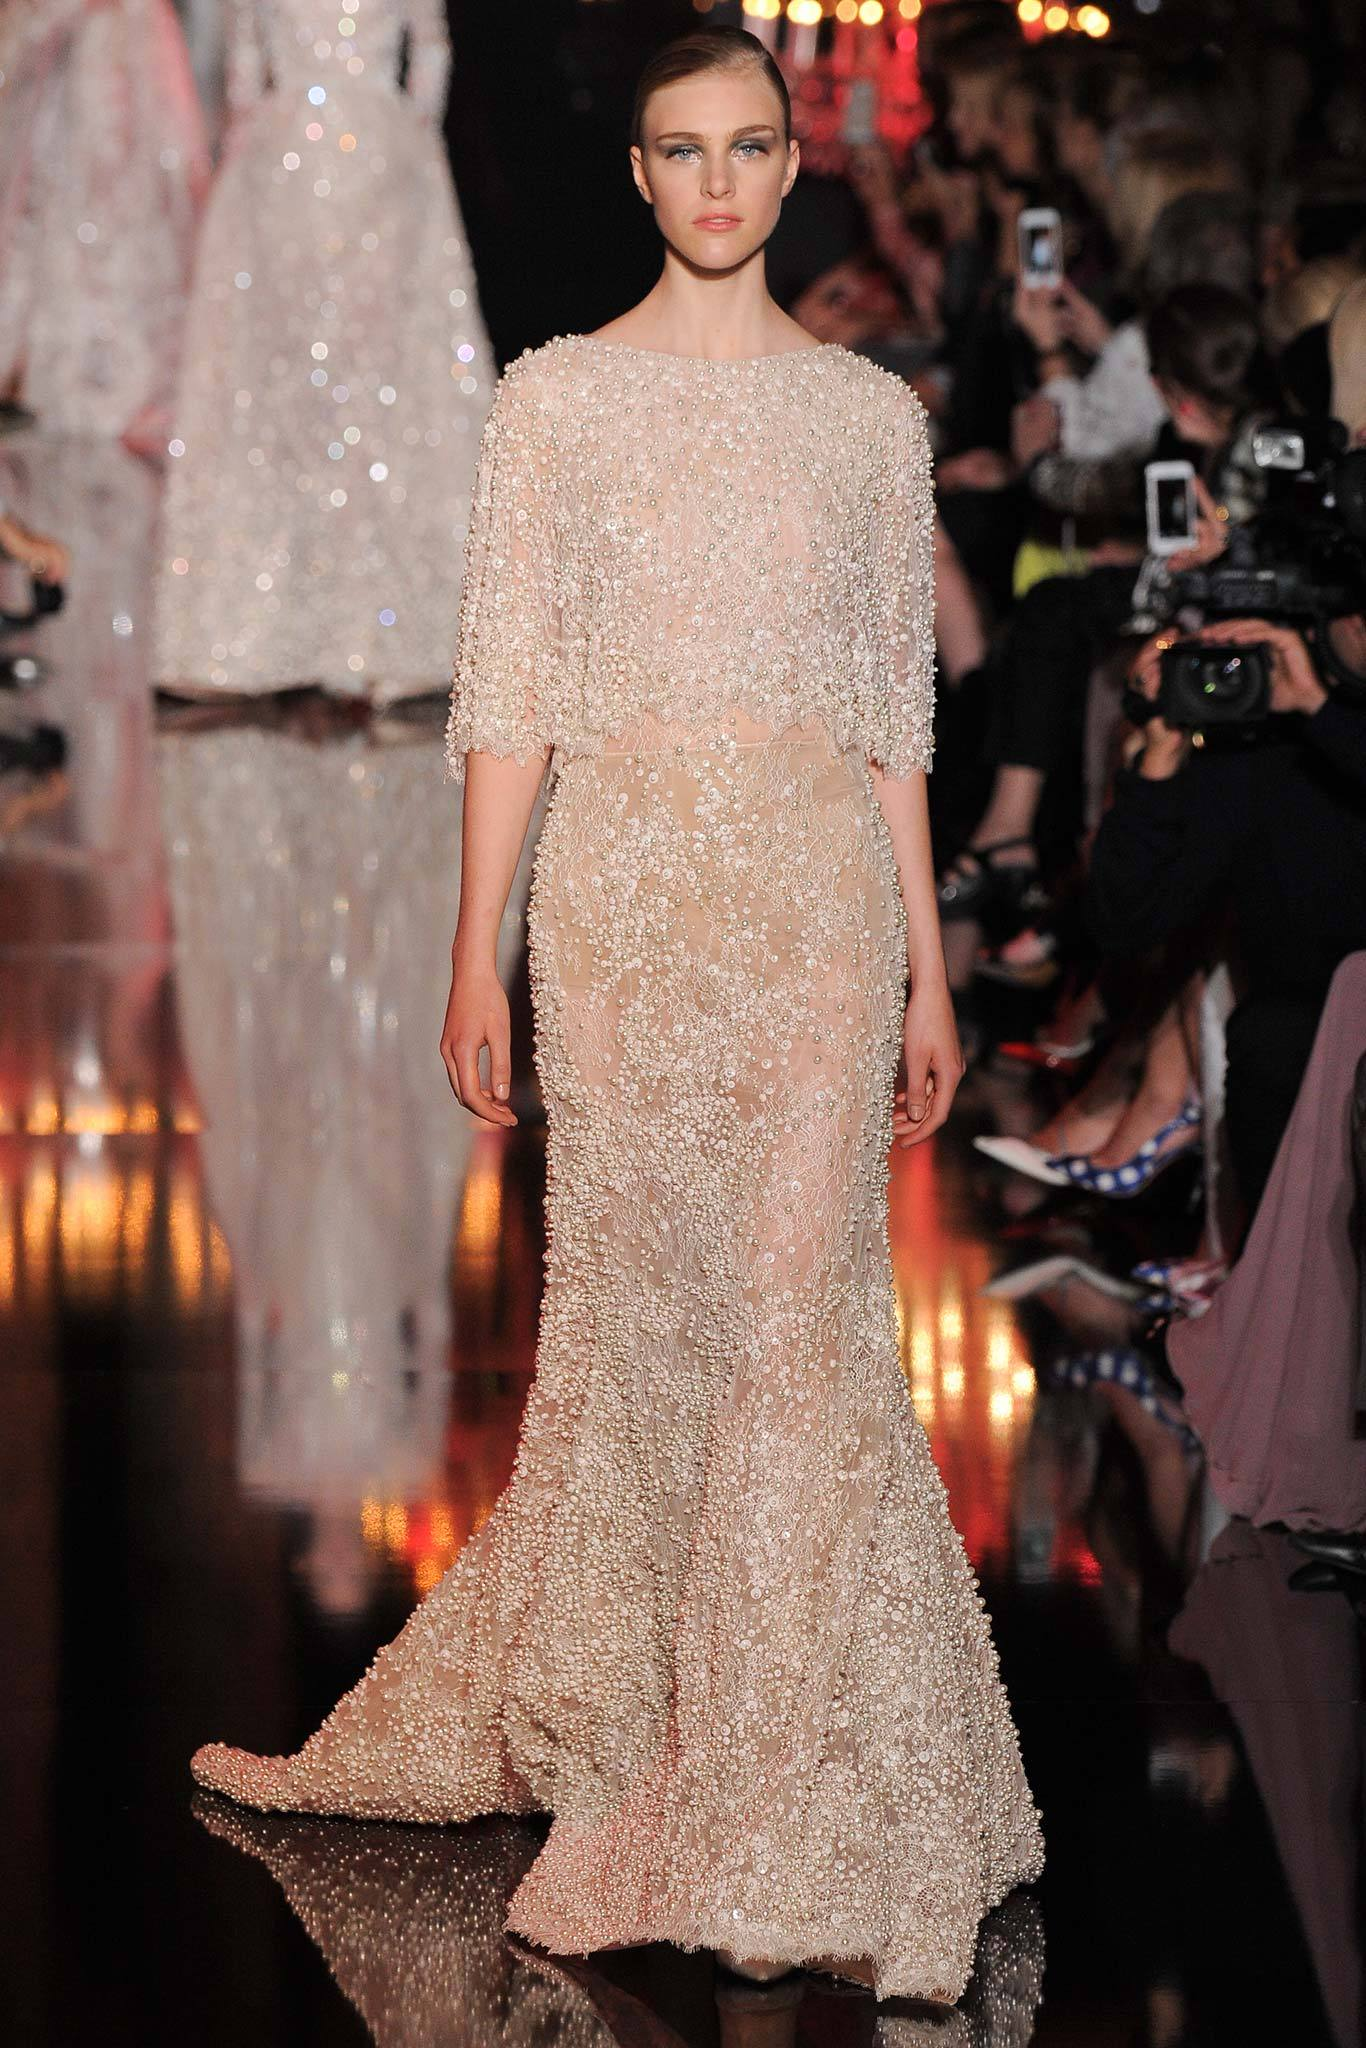 Hedvig Palm | Elie Saab Fall 2014 Couture (Photography: Yannis Vlamos / Indigitalimages.com via Style.com)